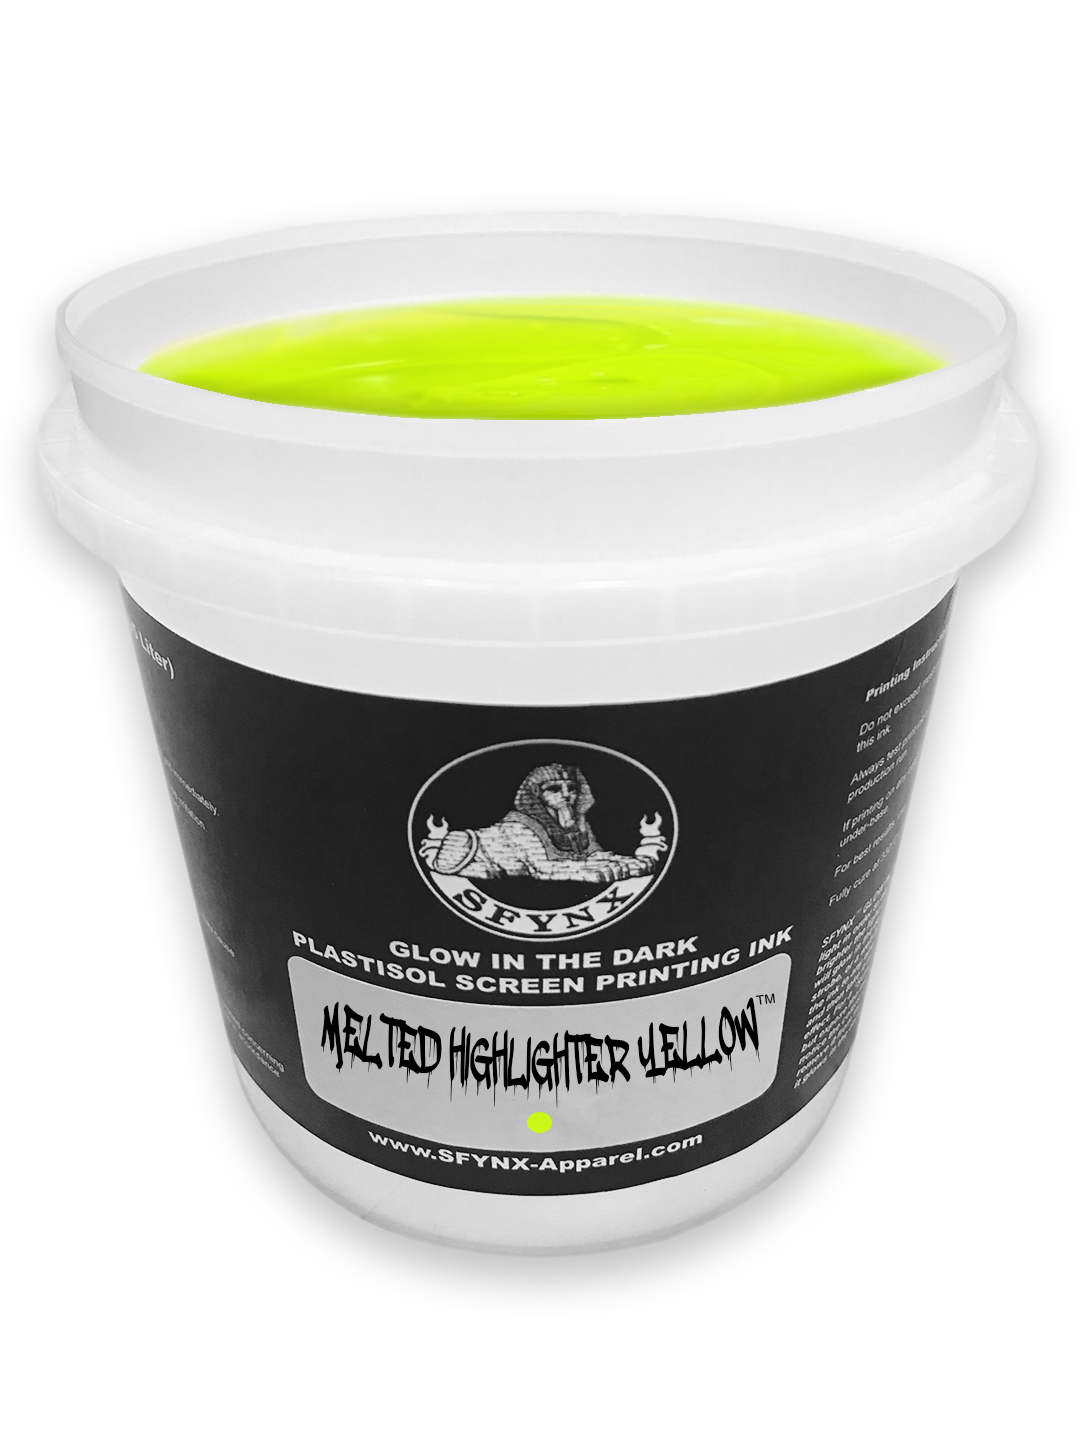 Melted Highlighter Yellow_1